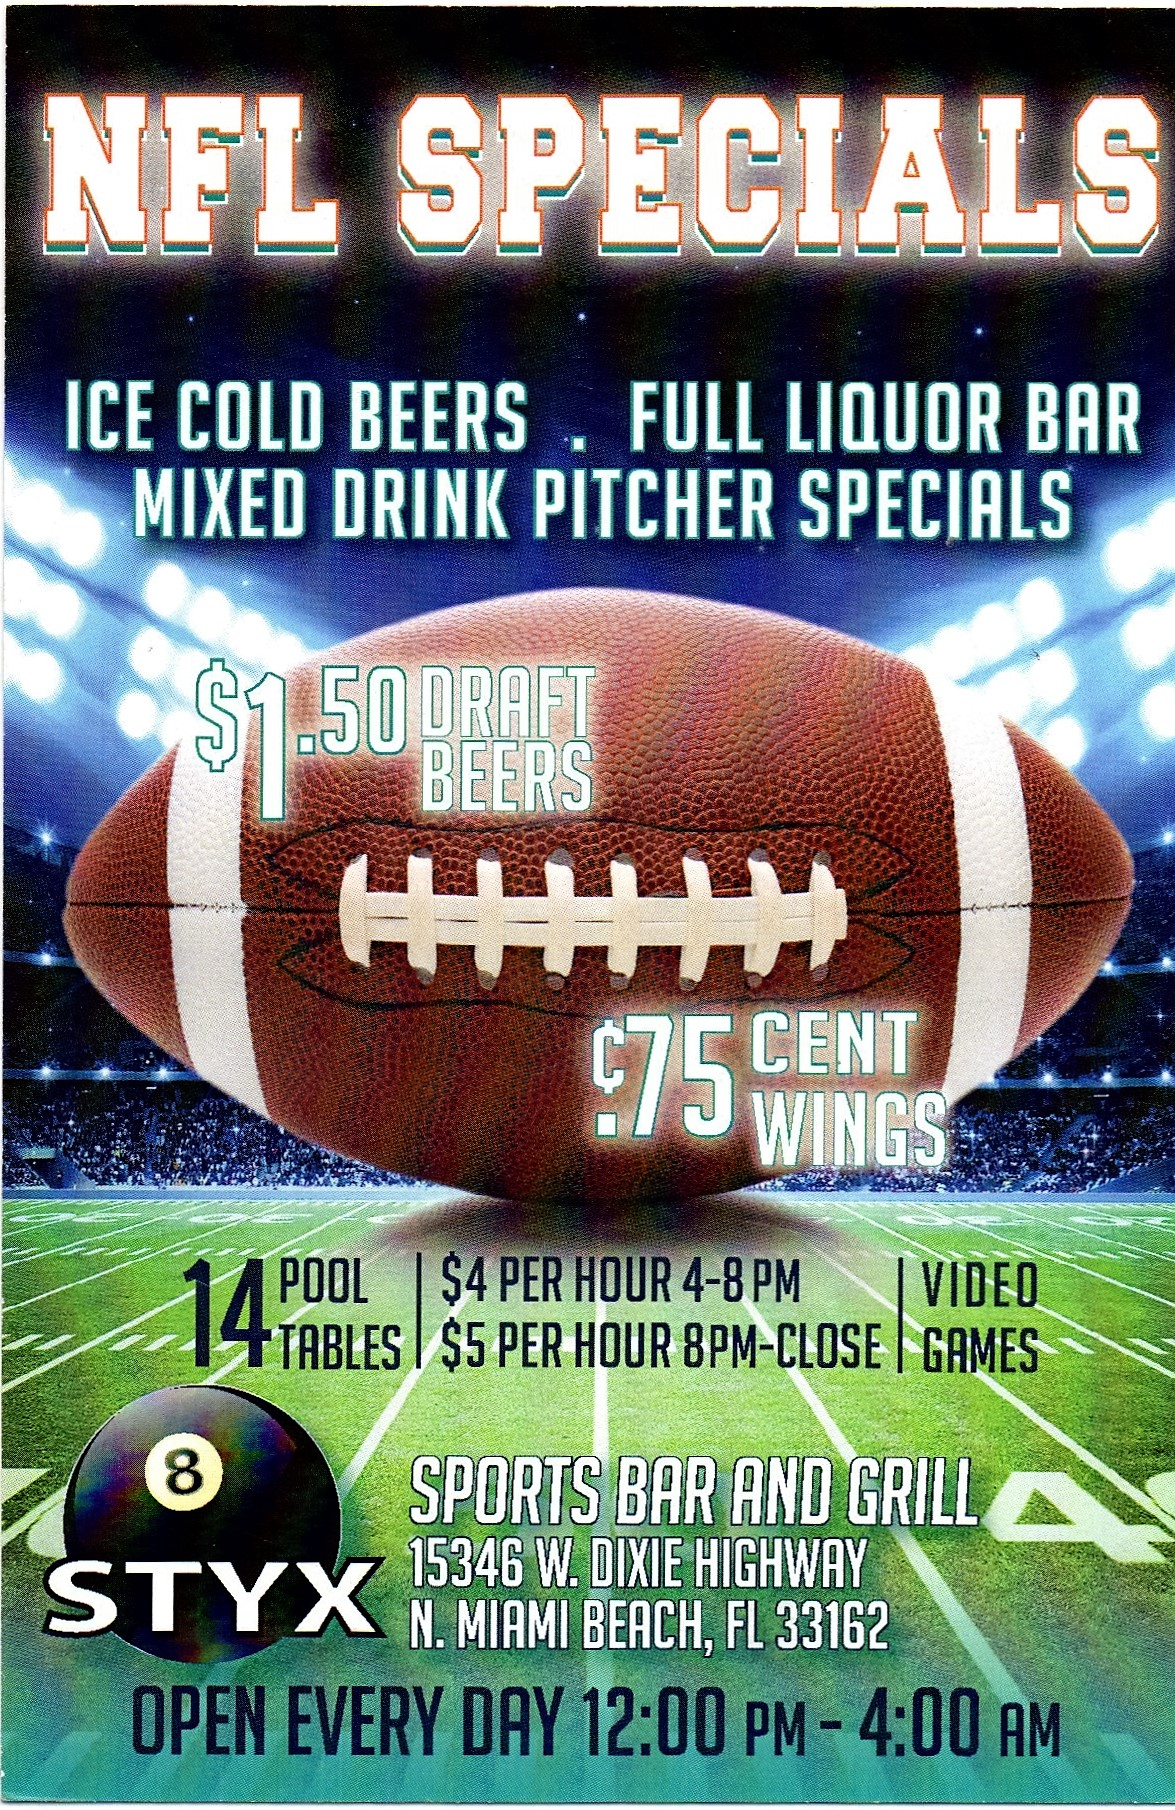 Football Season Drink and Food Specials